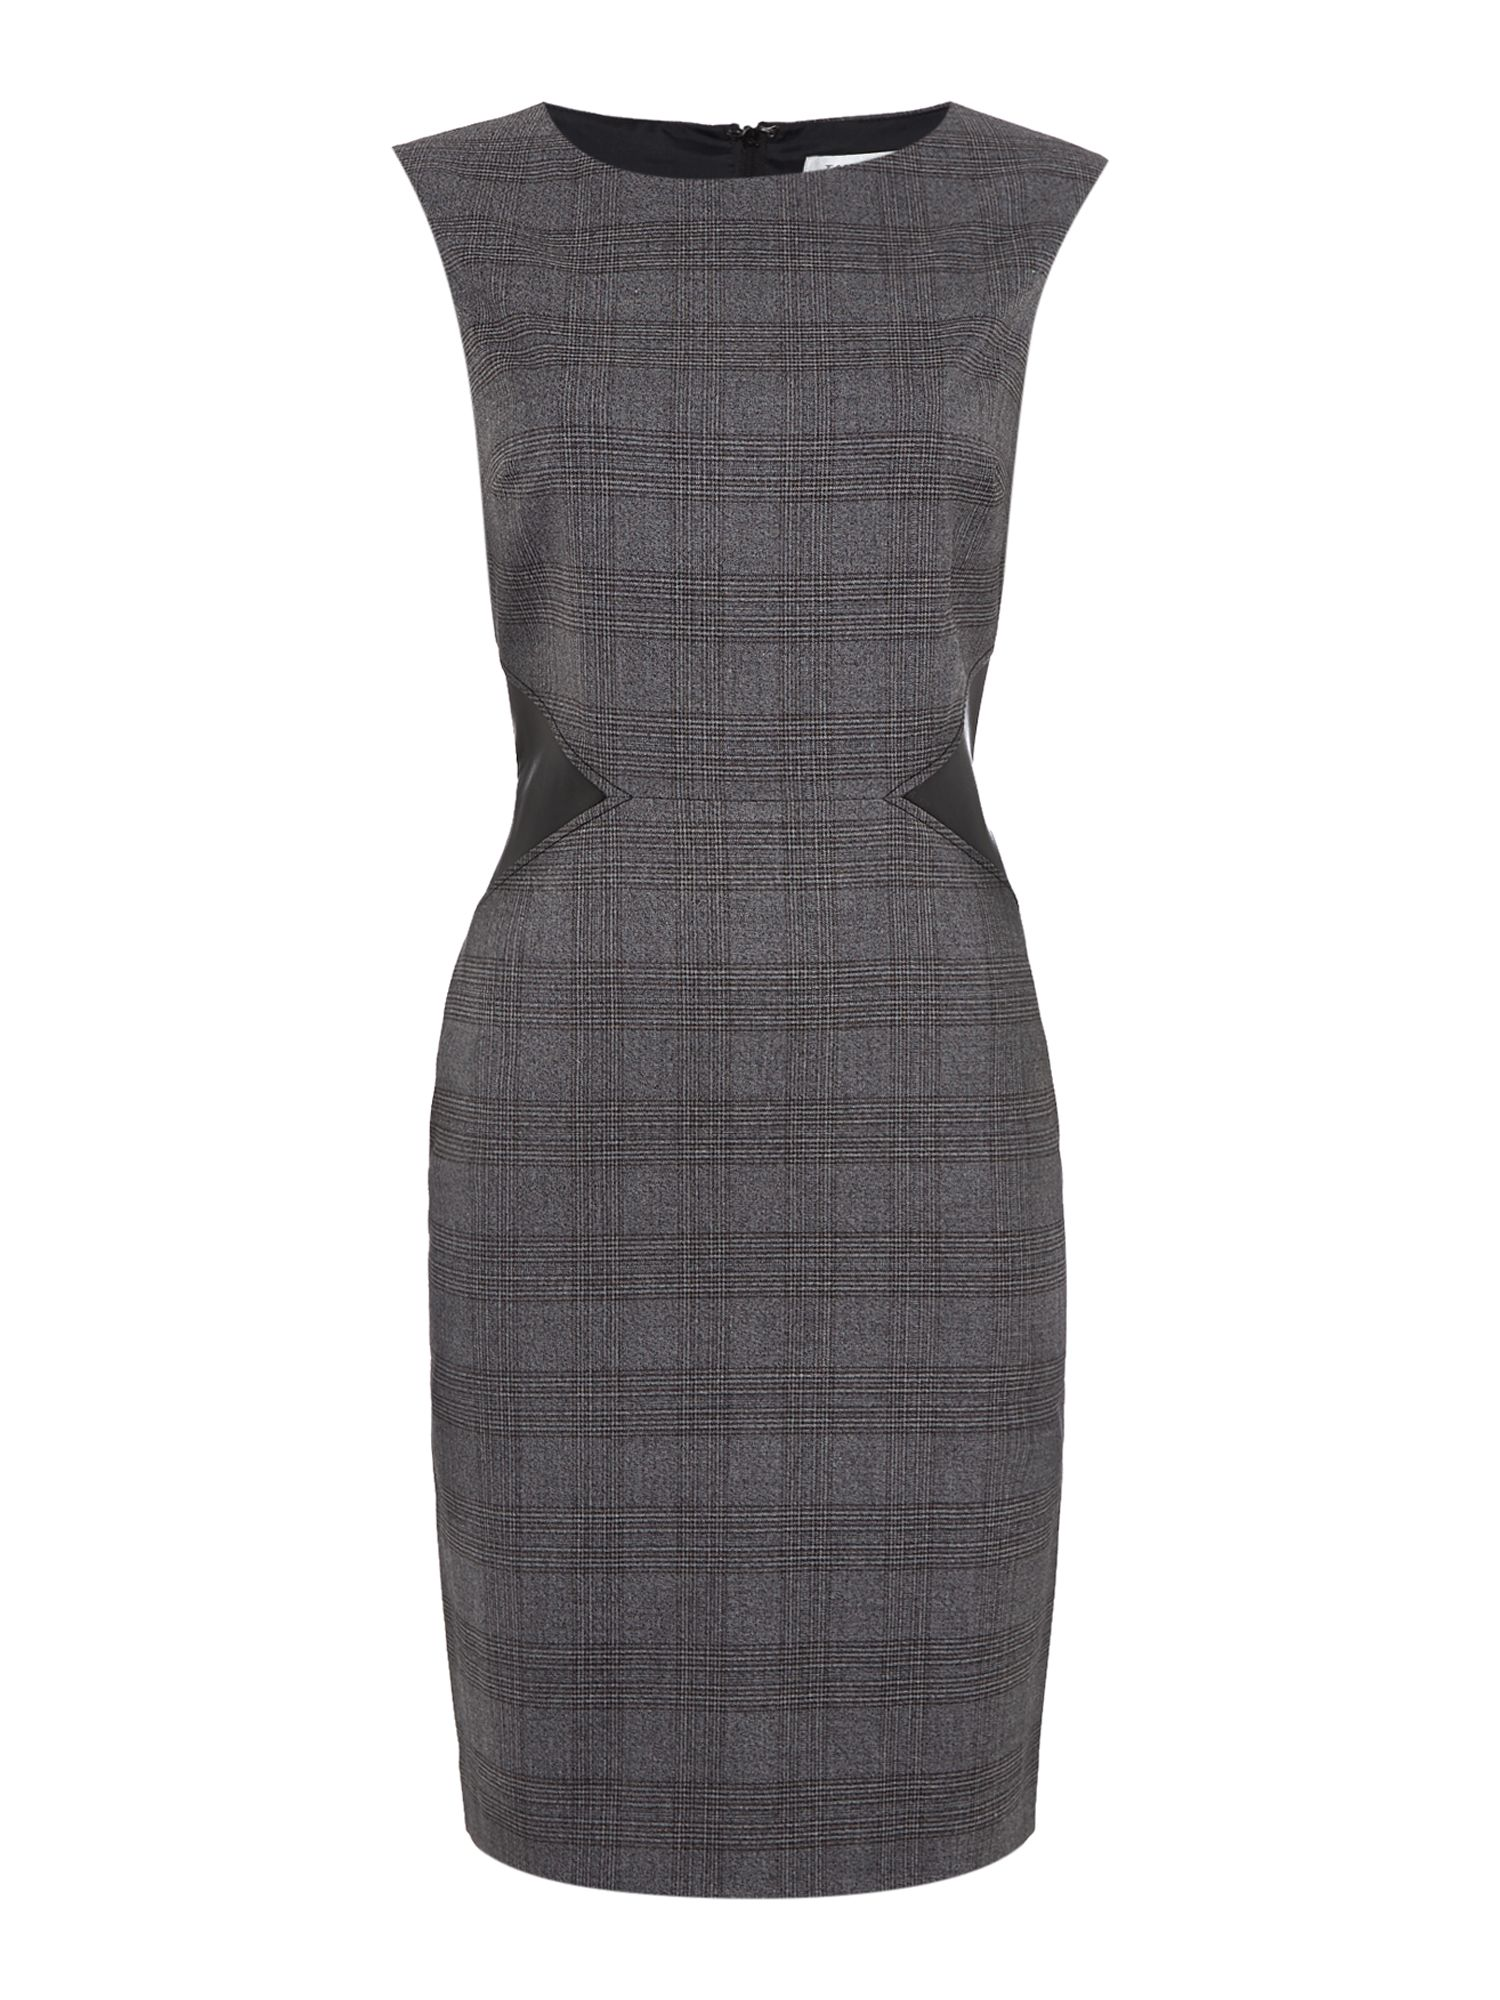 Tahari ASL Grey and Black Shift Dress, Grey